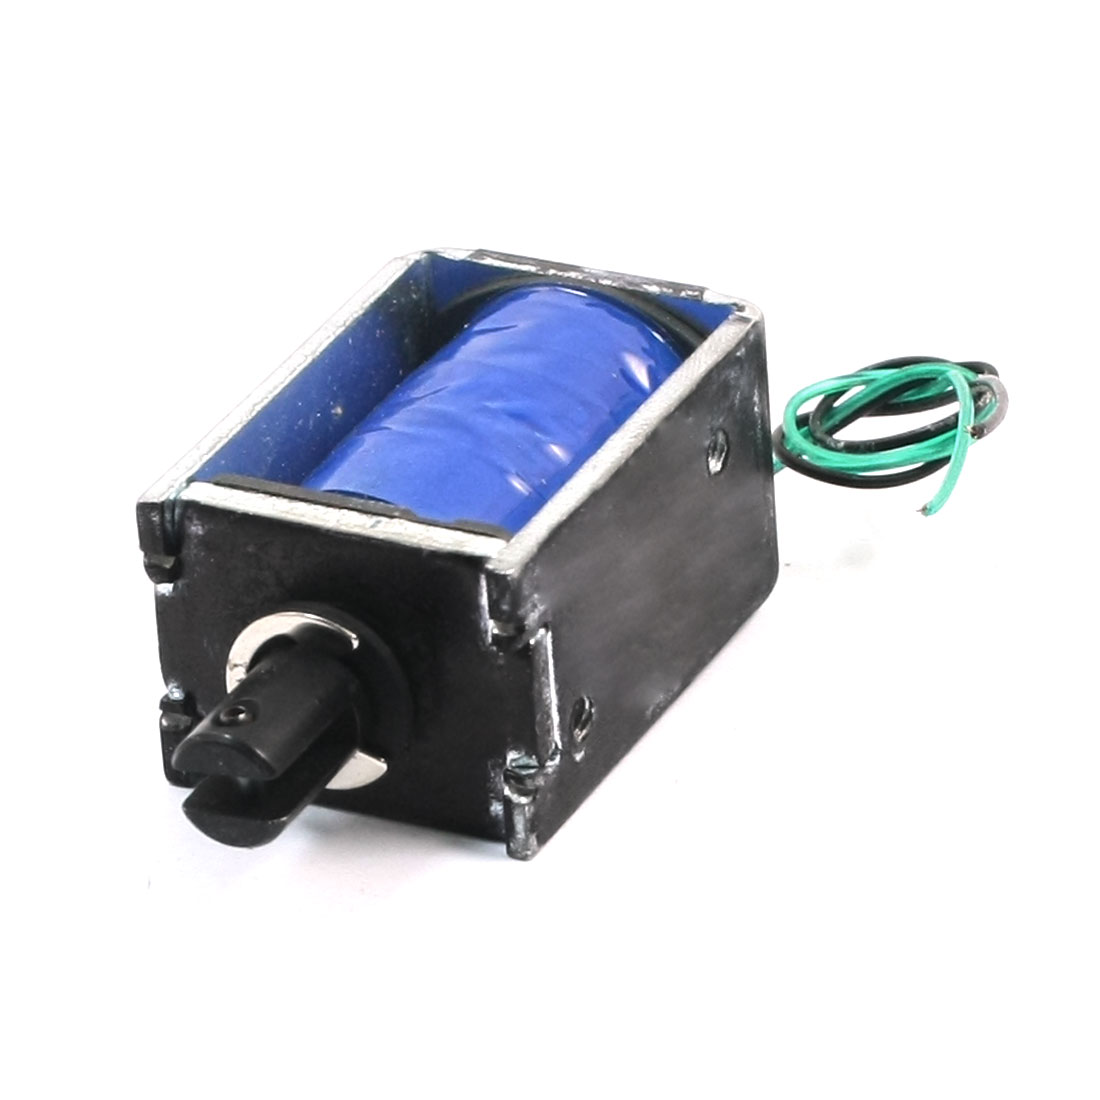 12V 500g/5mm 50% Electrified Rate Push Linear Motion Solenoid Electromagnet